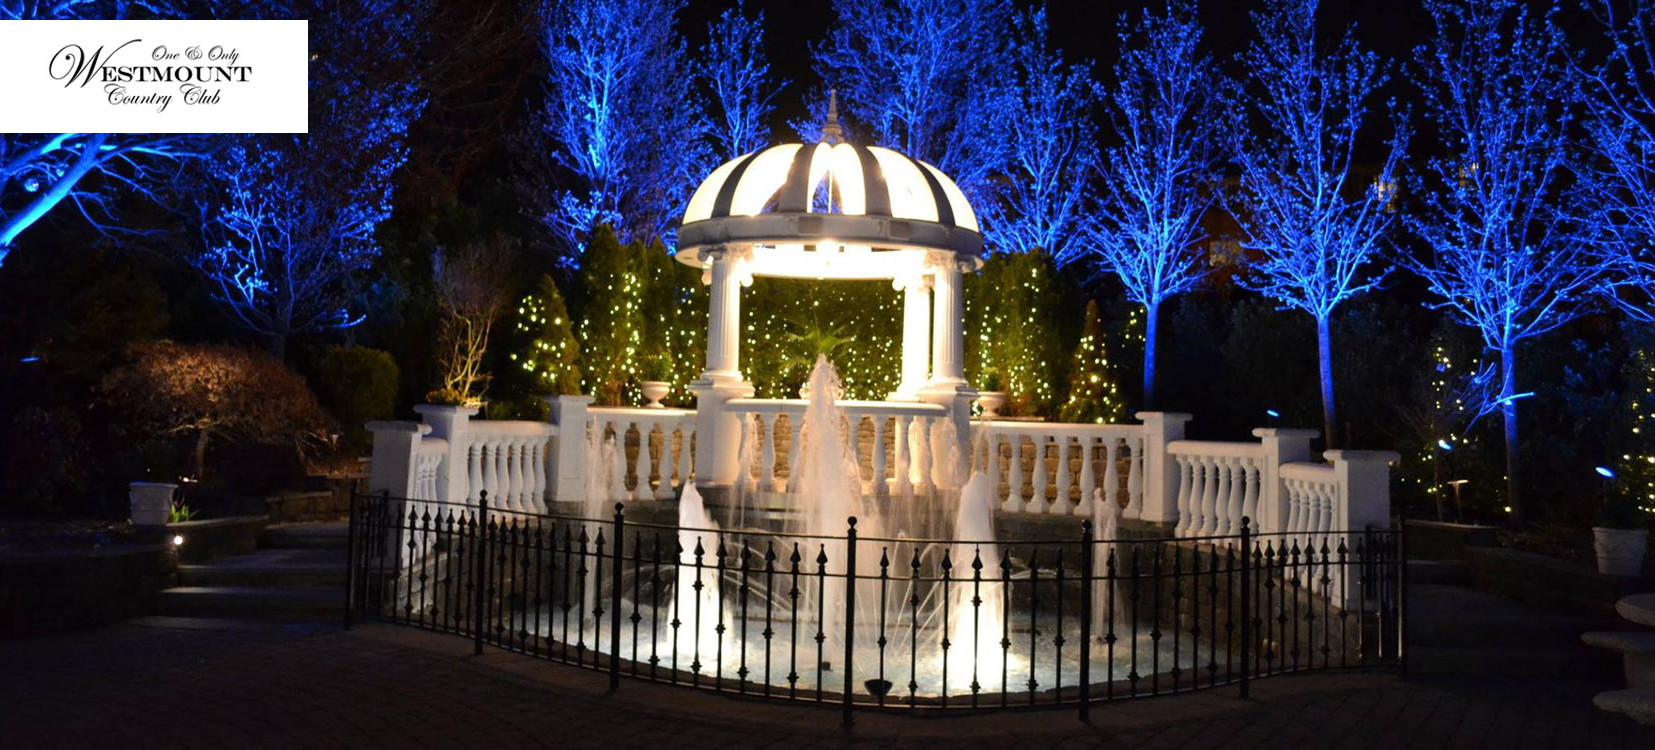 Nighttime Photo Of The Fountain At Westmount Country Club